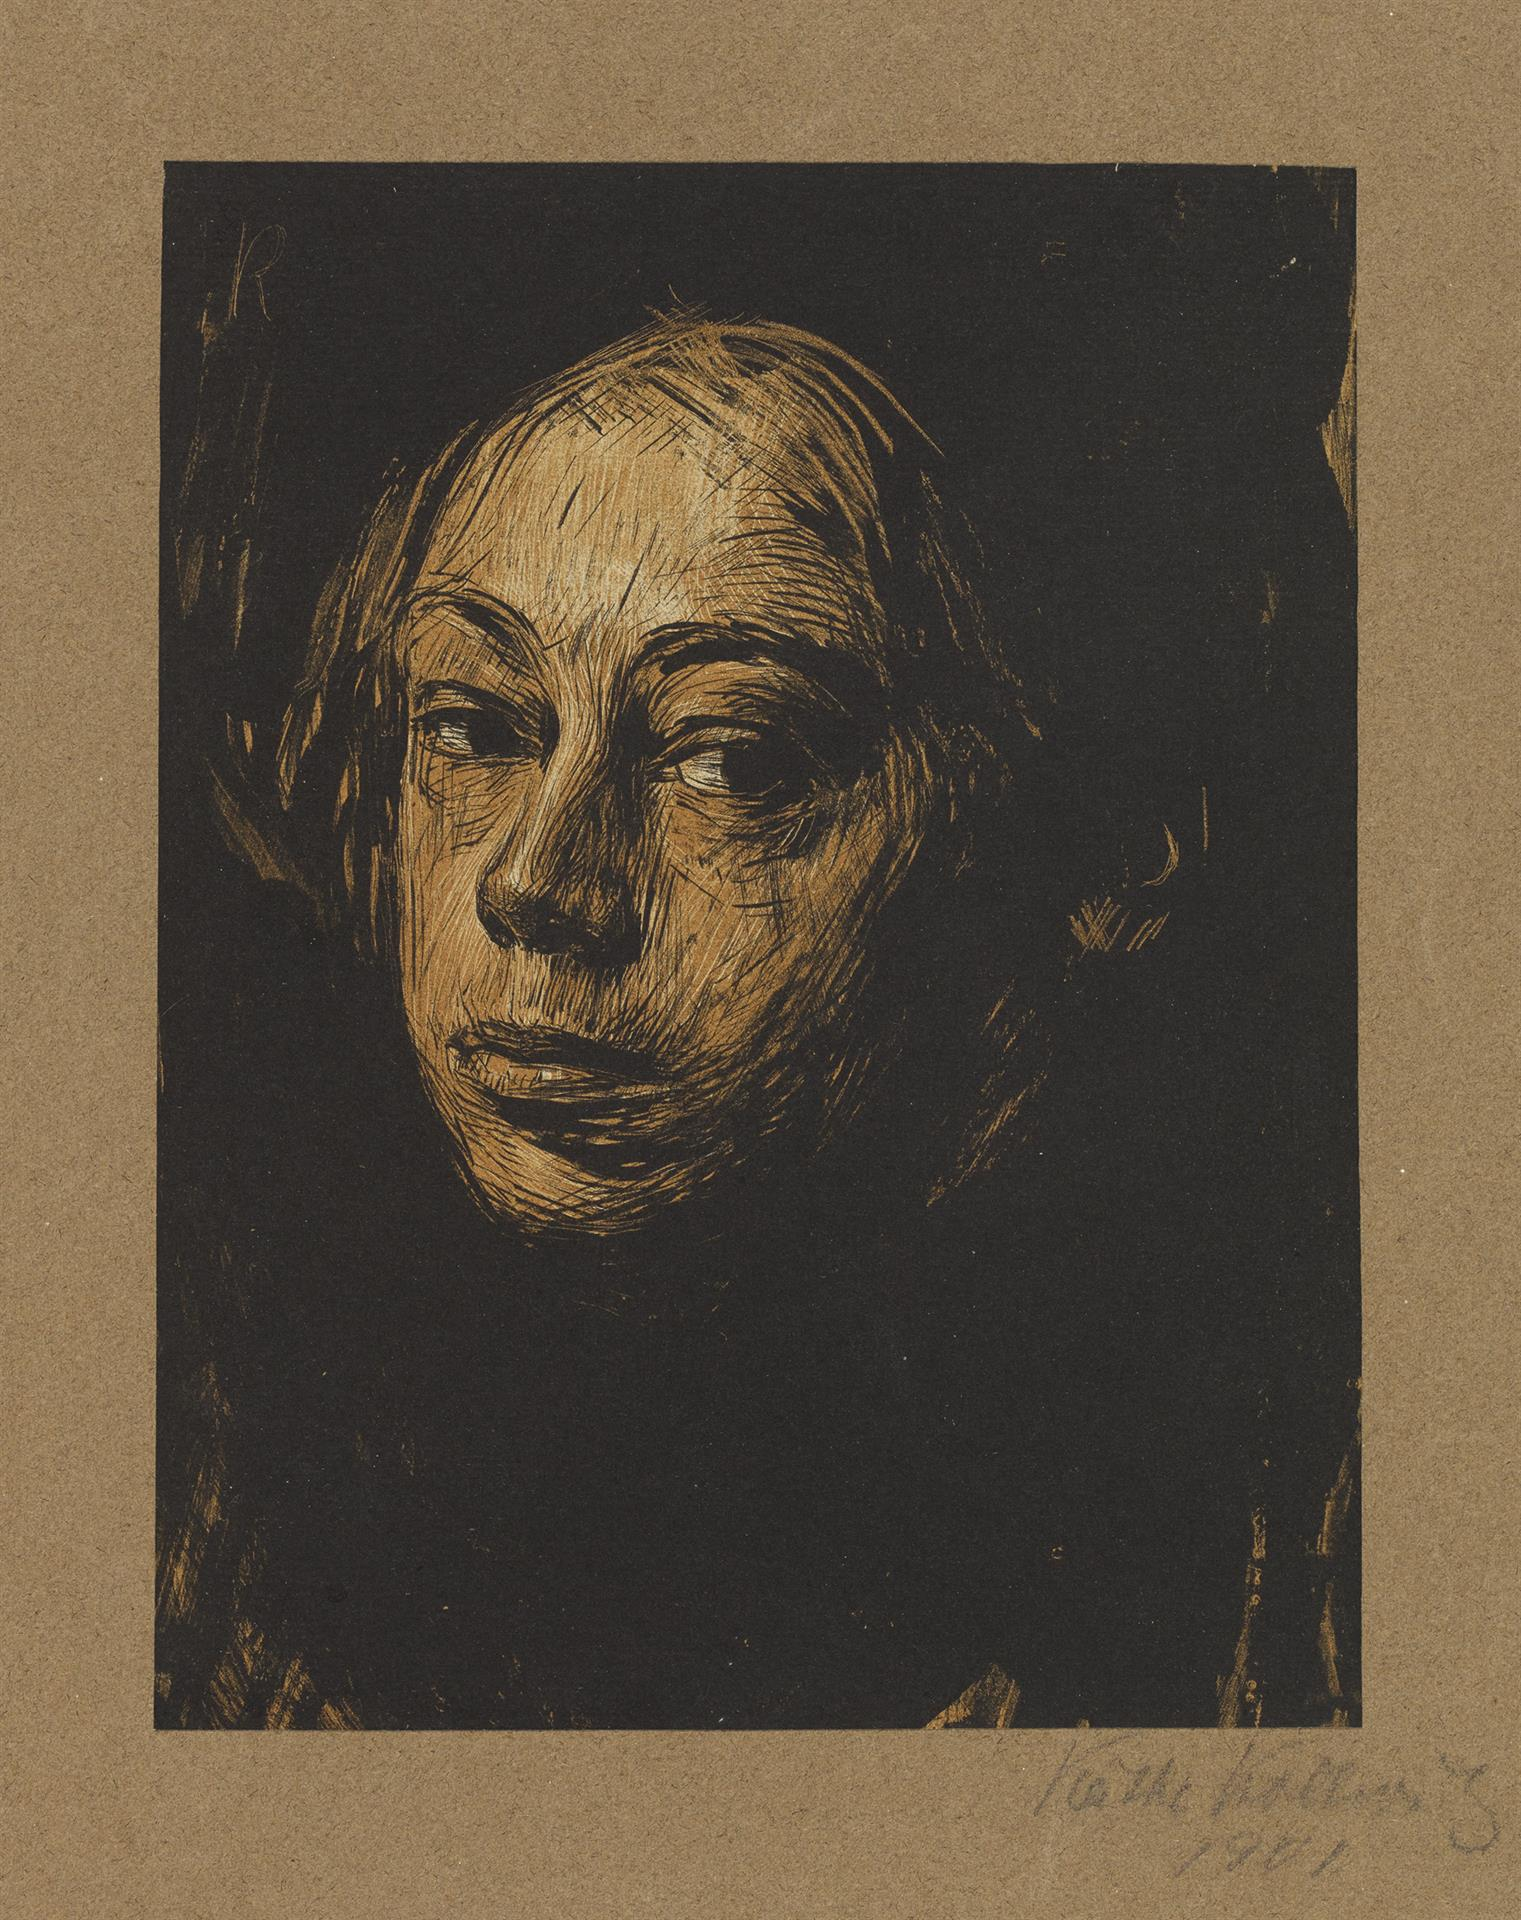 Käthe Kollwitz, Self-portait towards left, 1901, brush and pen lithograph in two colors with scratch technique in the drawing stone and in the tone stone, printed in brown, Kn 52 I, Cologne Kollwitz Collection © Käthe Kollwitz Museum Köln